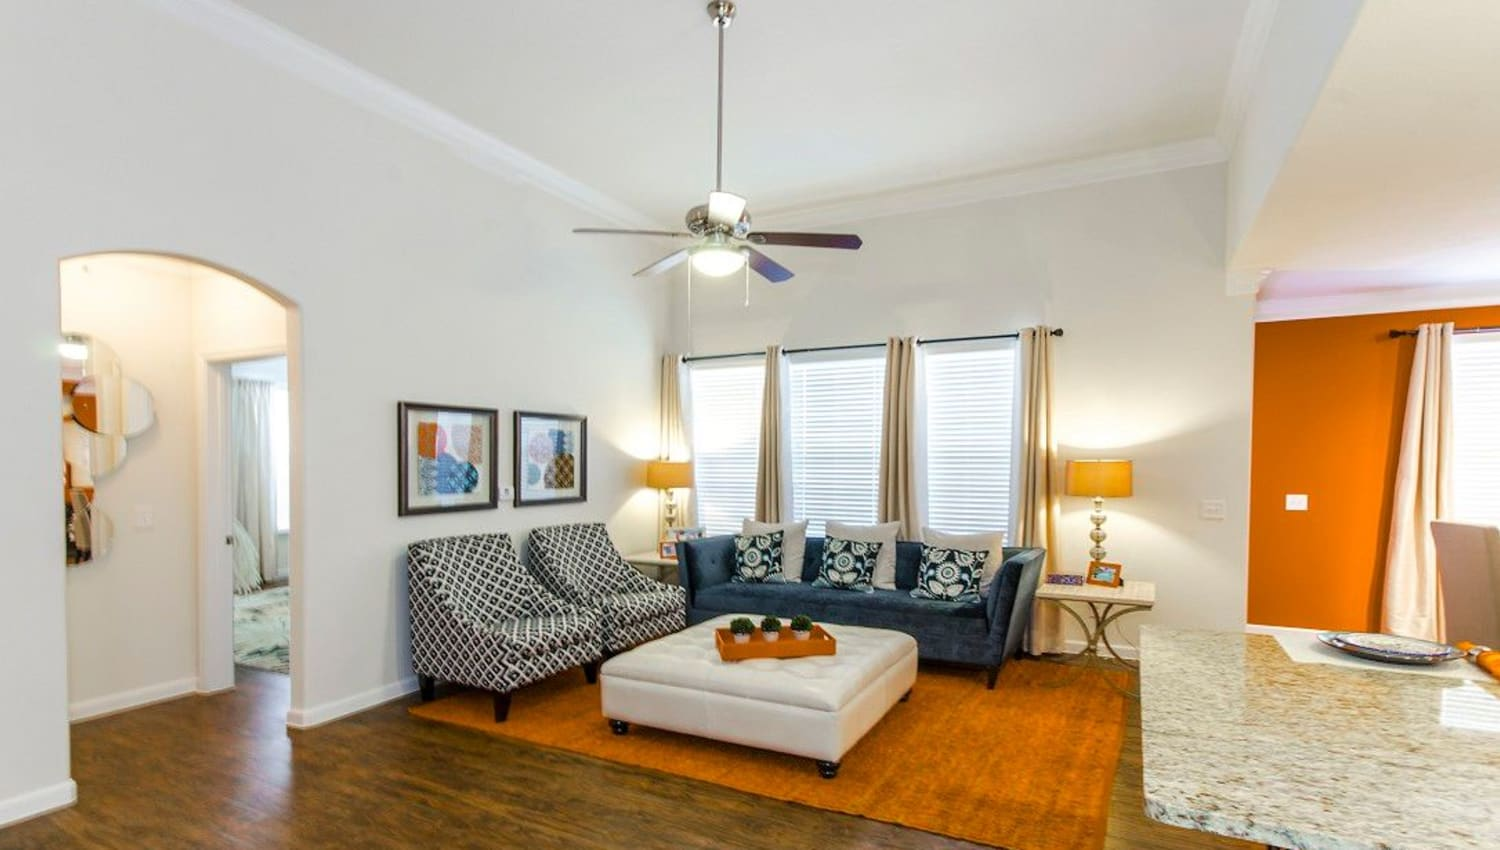 Well-furnished living area with a ceiling fan in a model home at Olympus Woodbridge in Sachse, Texas